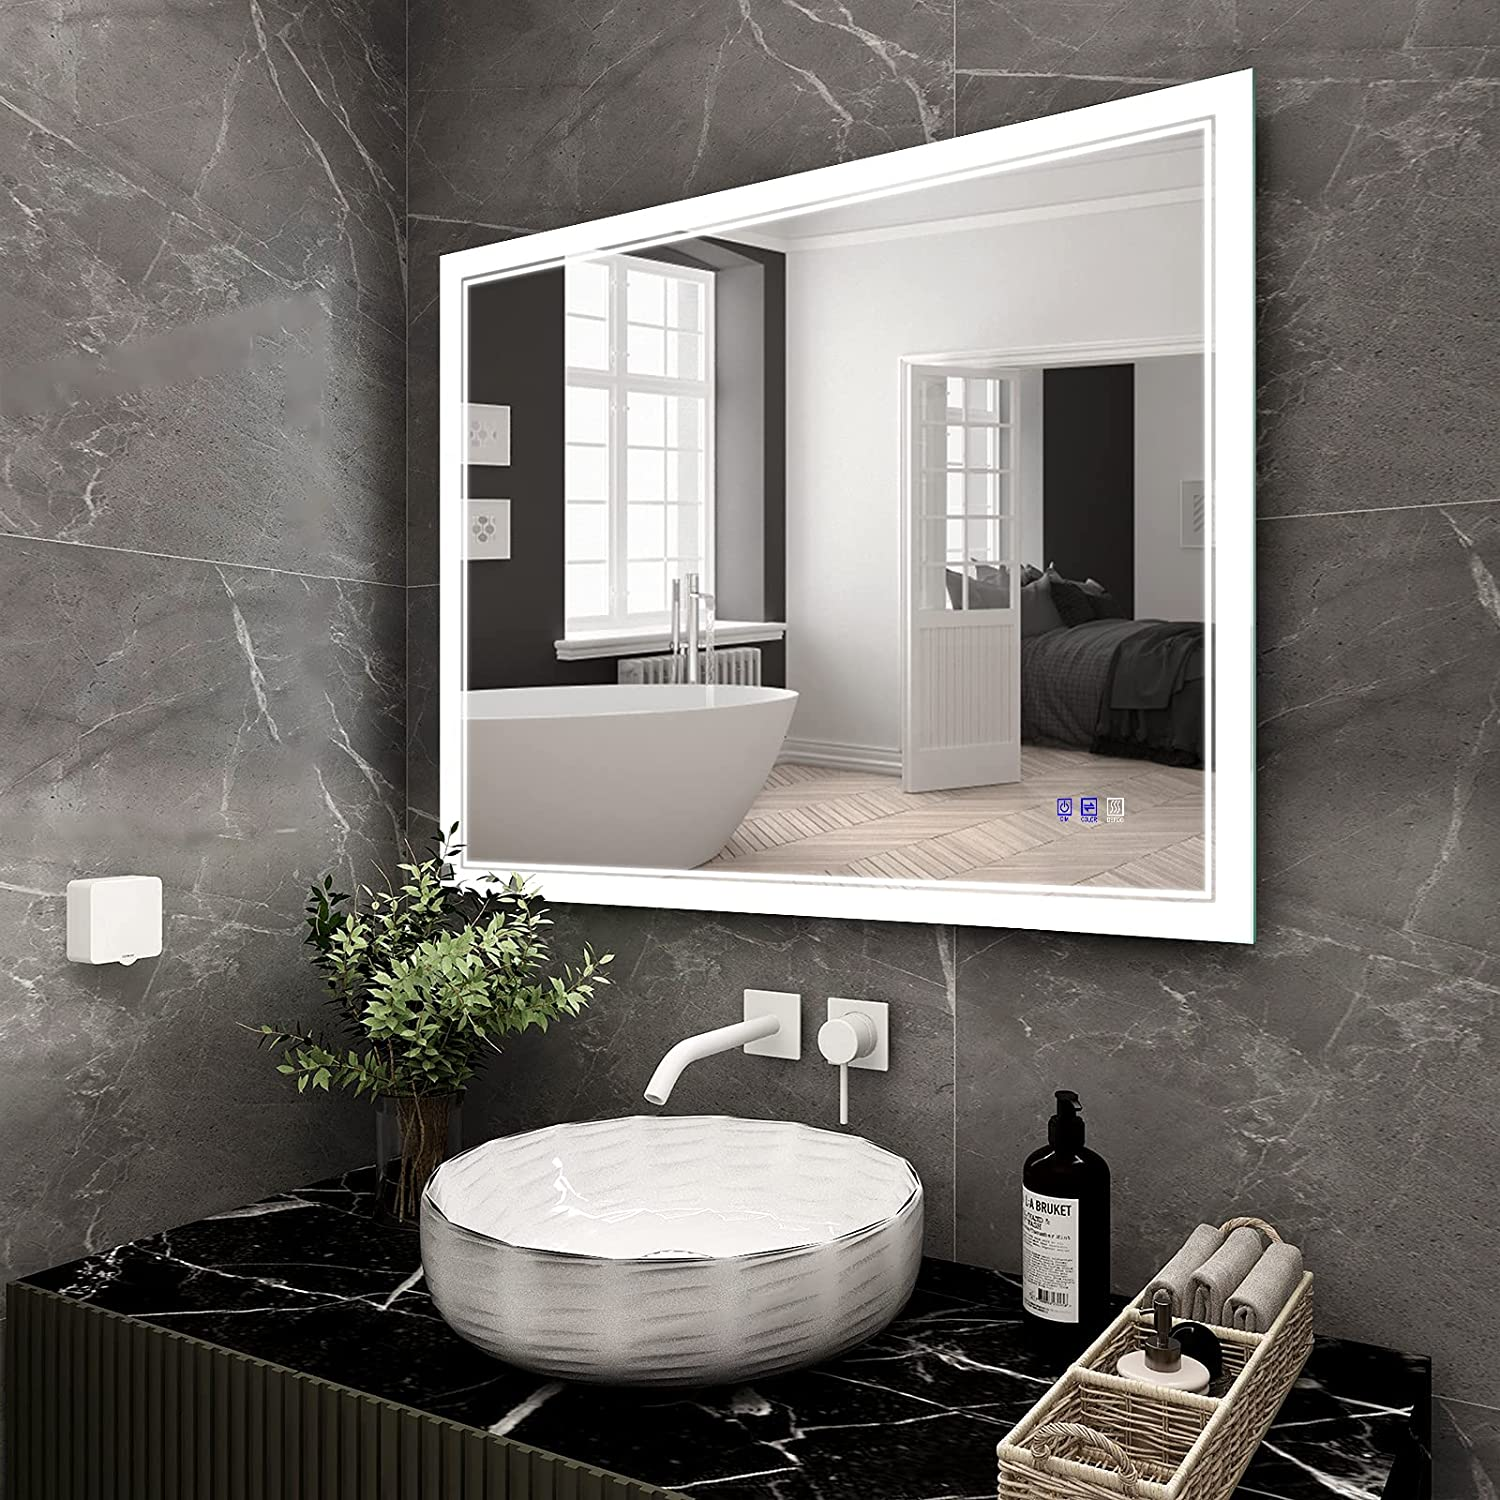 BATHTECHY 40x32 Inch LED Bathroom L Mounted At the price of surprise Wall Mirror Lighted 2021